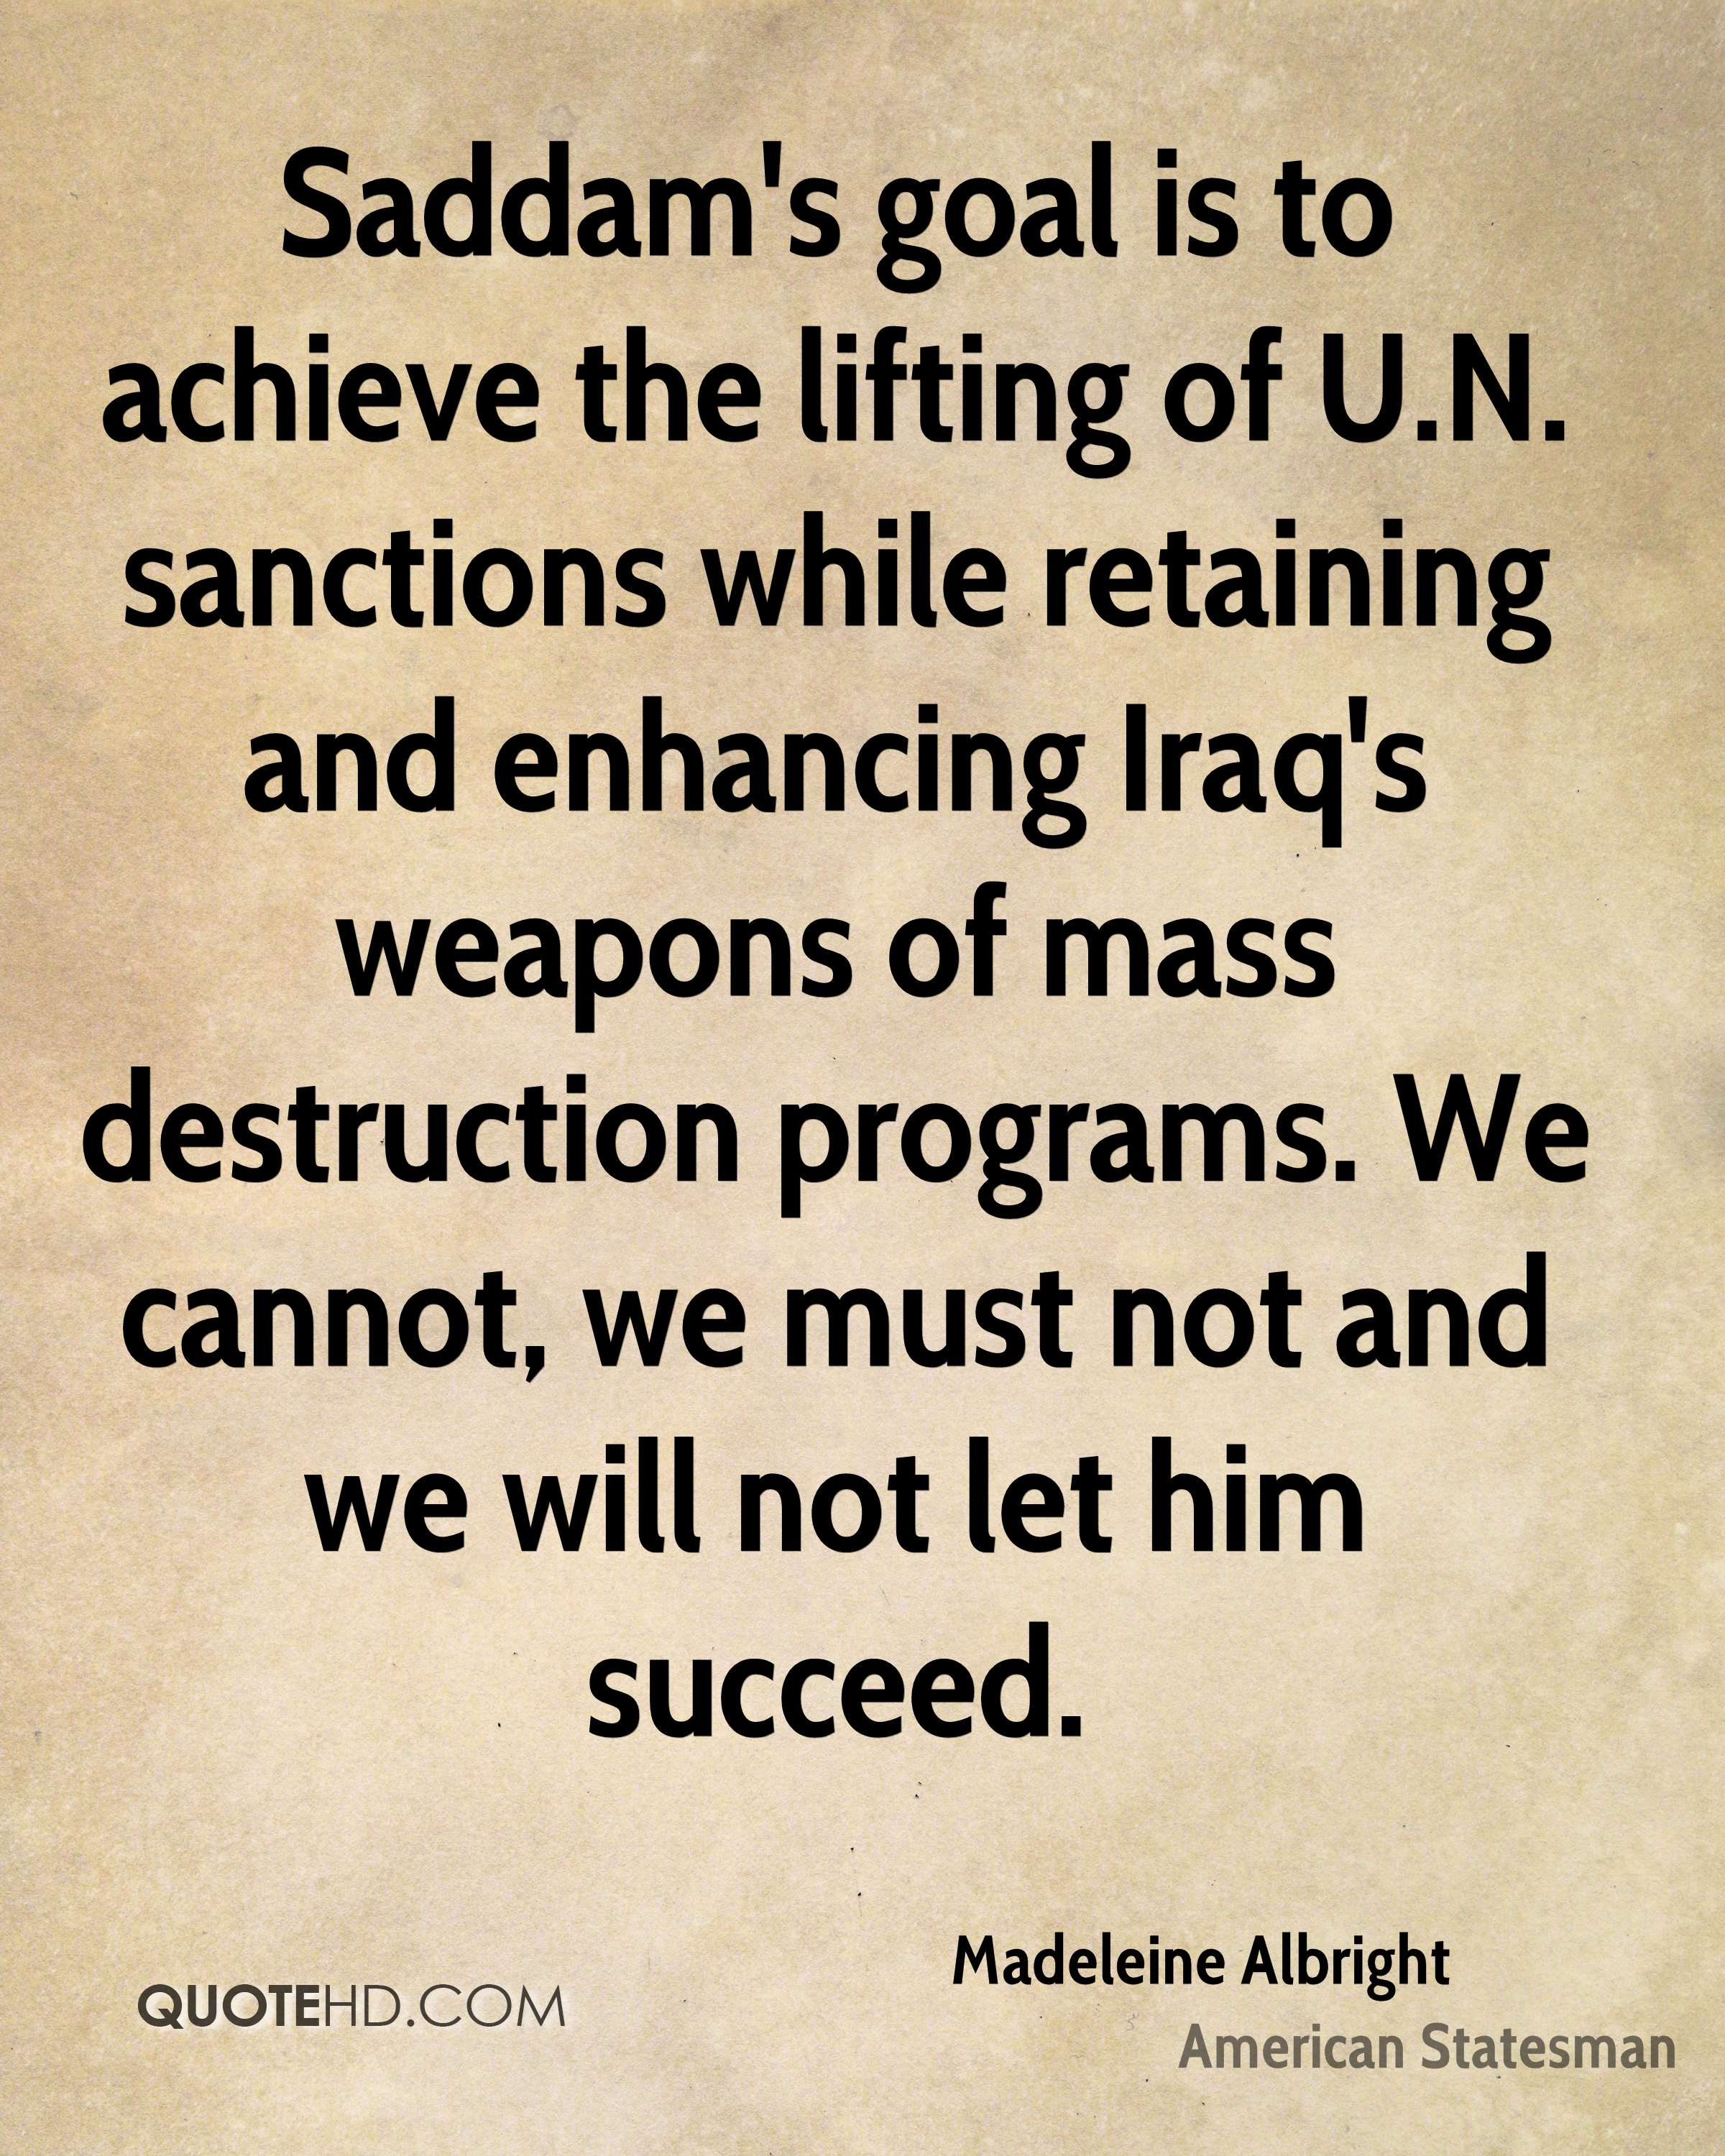 Saddam's goal is to achieve the lifting of U.N. sanctions while retaining and enhancing Iraq's weapons of mass destruction programs. We cannot, we must not and we will not let him succeed.